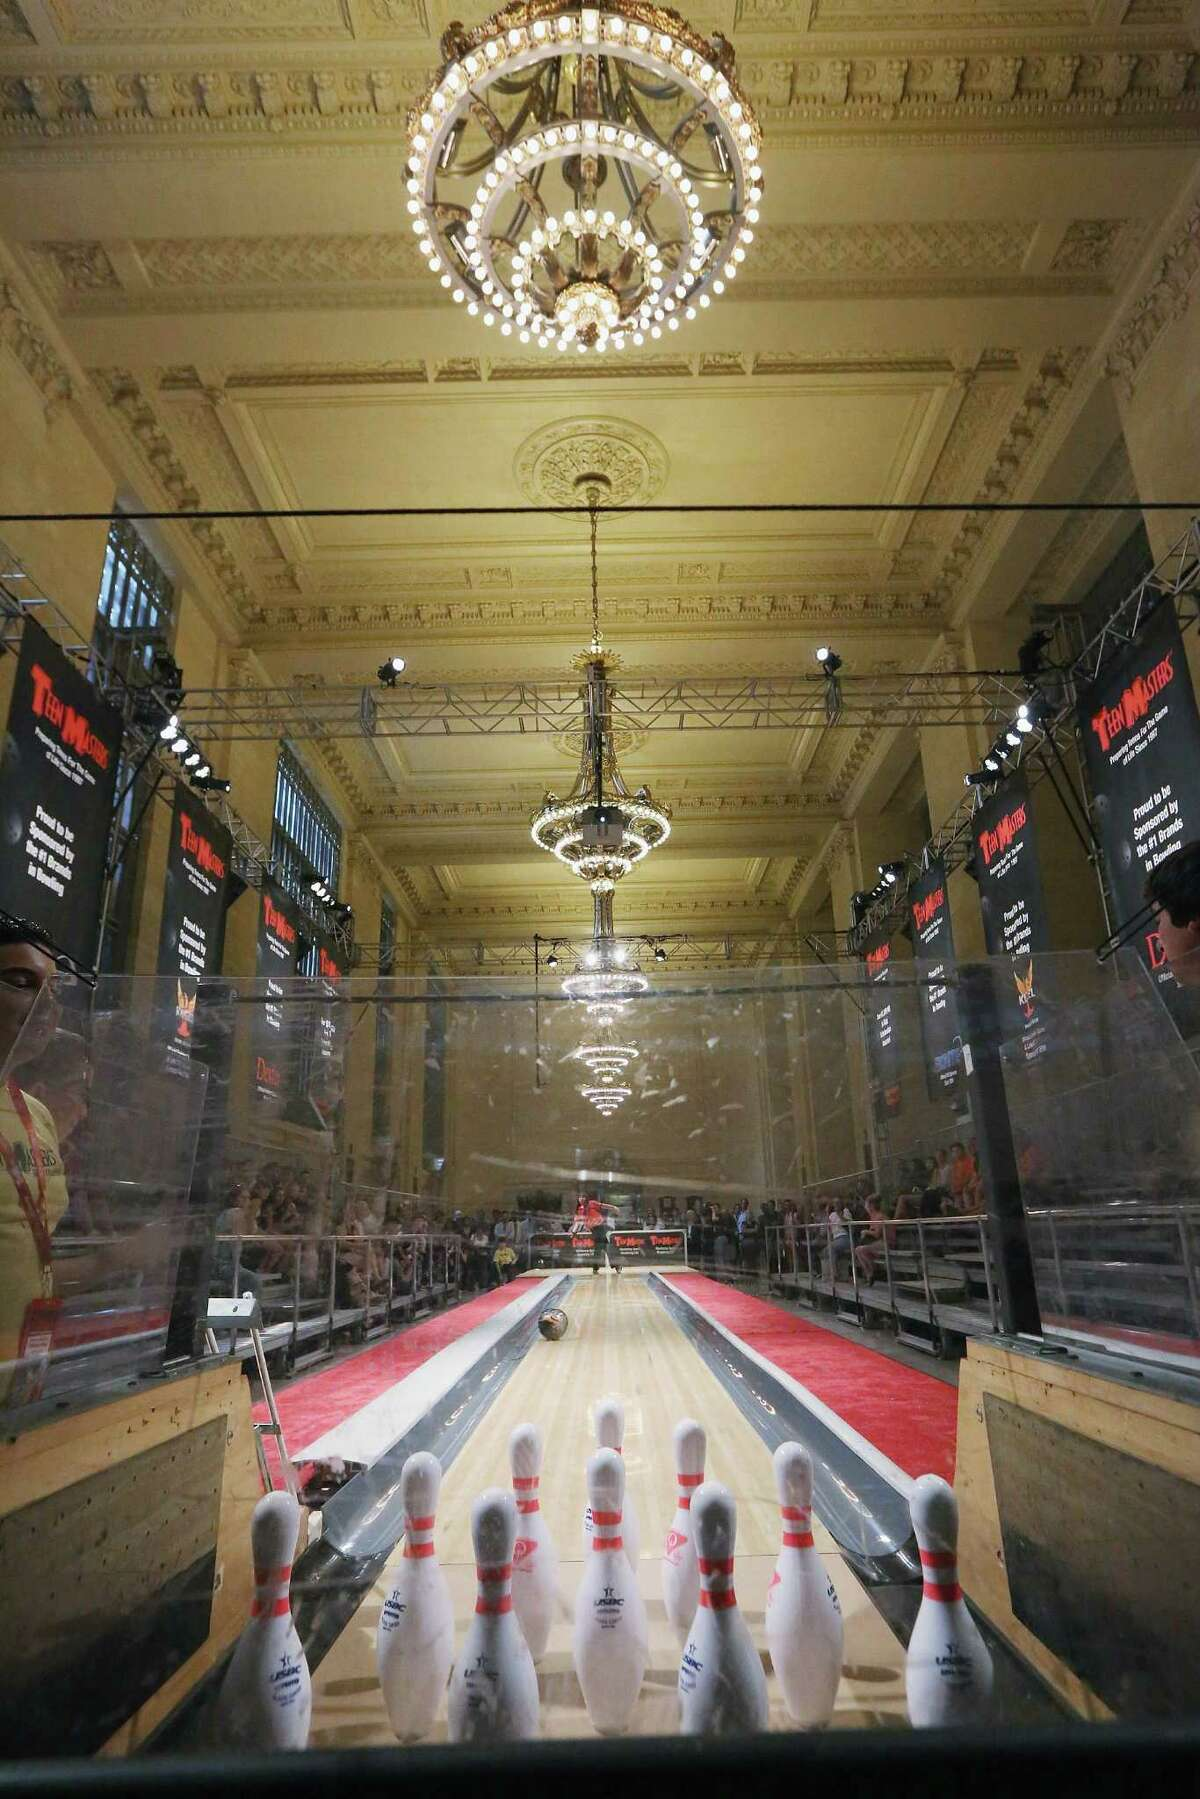 NEW YORK, NY - AUGUST 07: Ashley Dunn bowls during the 2012 Teen Masters Bowling Championship in Grand Central Terminal on August 7, 2012 in New York City. The championship is the second time in history that Grand Central's Vanderbilt Hall has hosted a bowling alley.